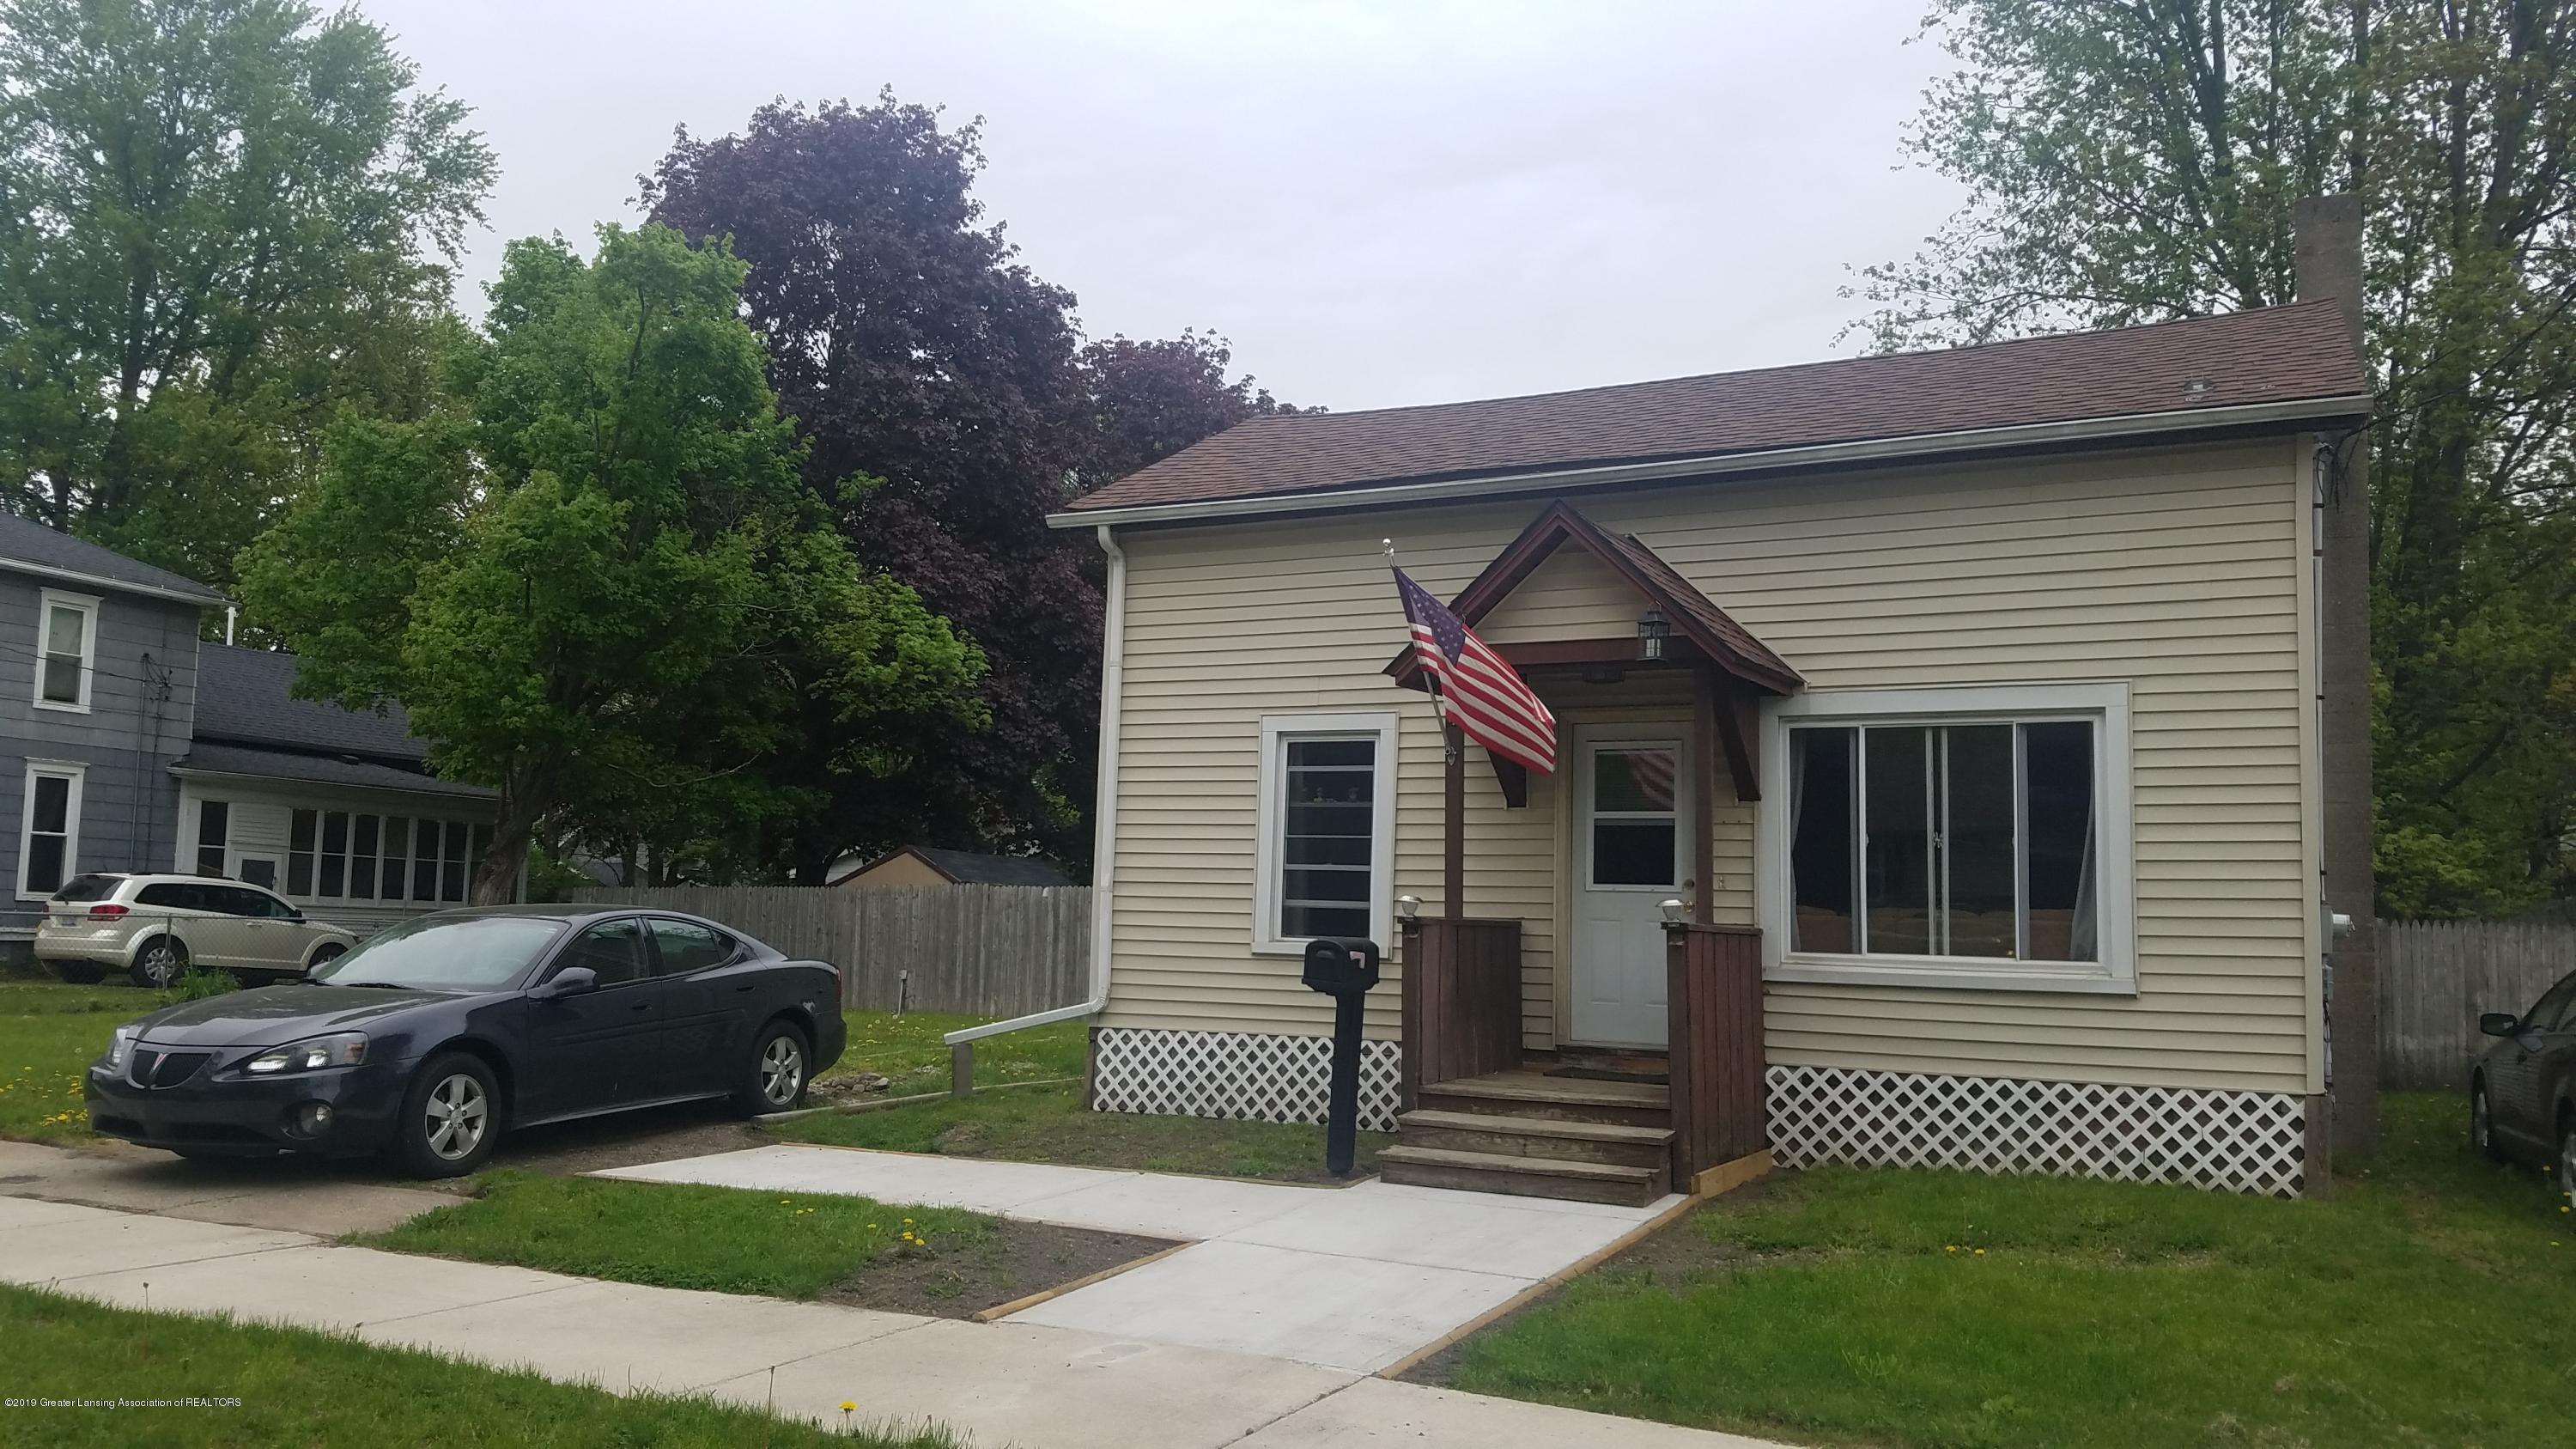 314 N Sheldon St - FRONT OF HOME - 1